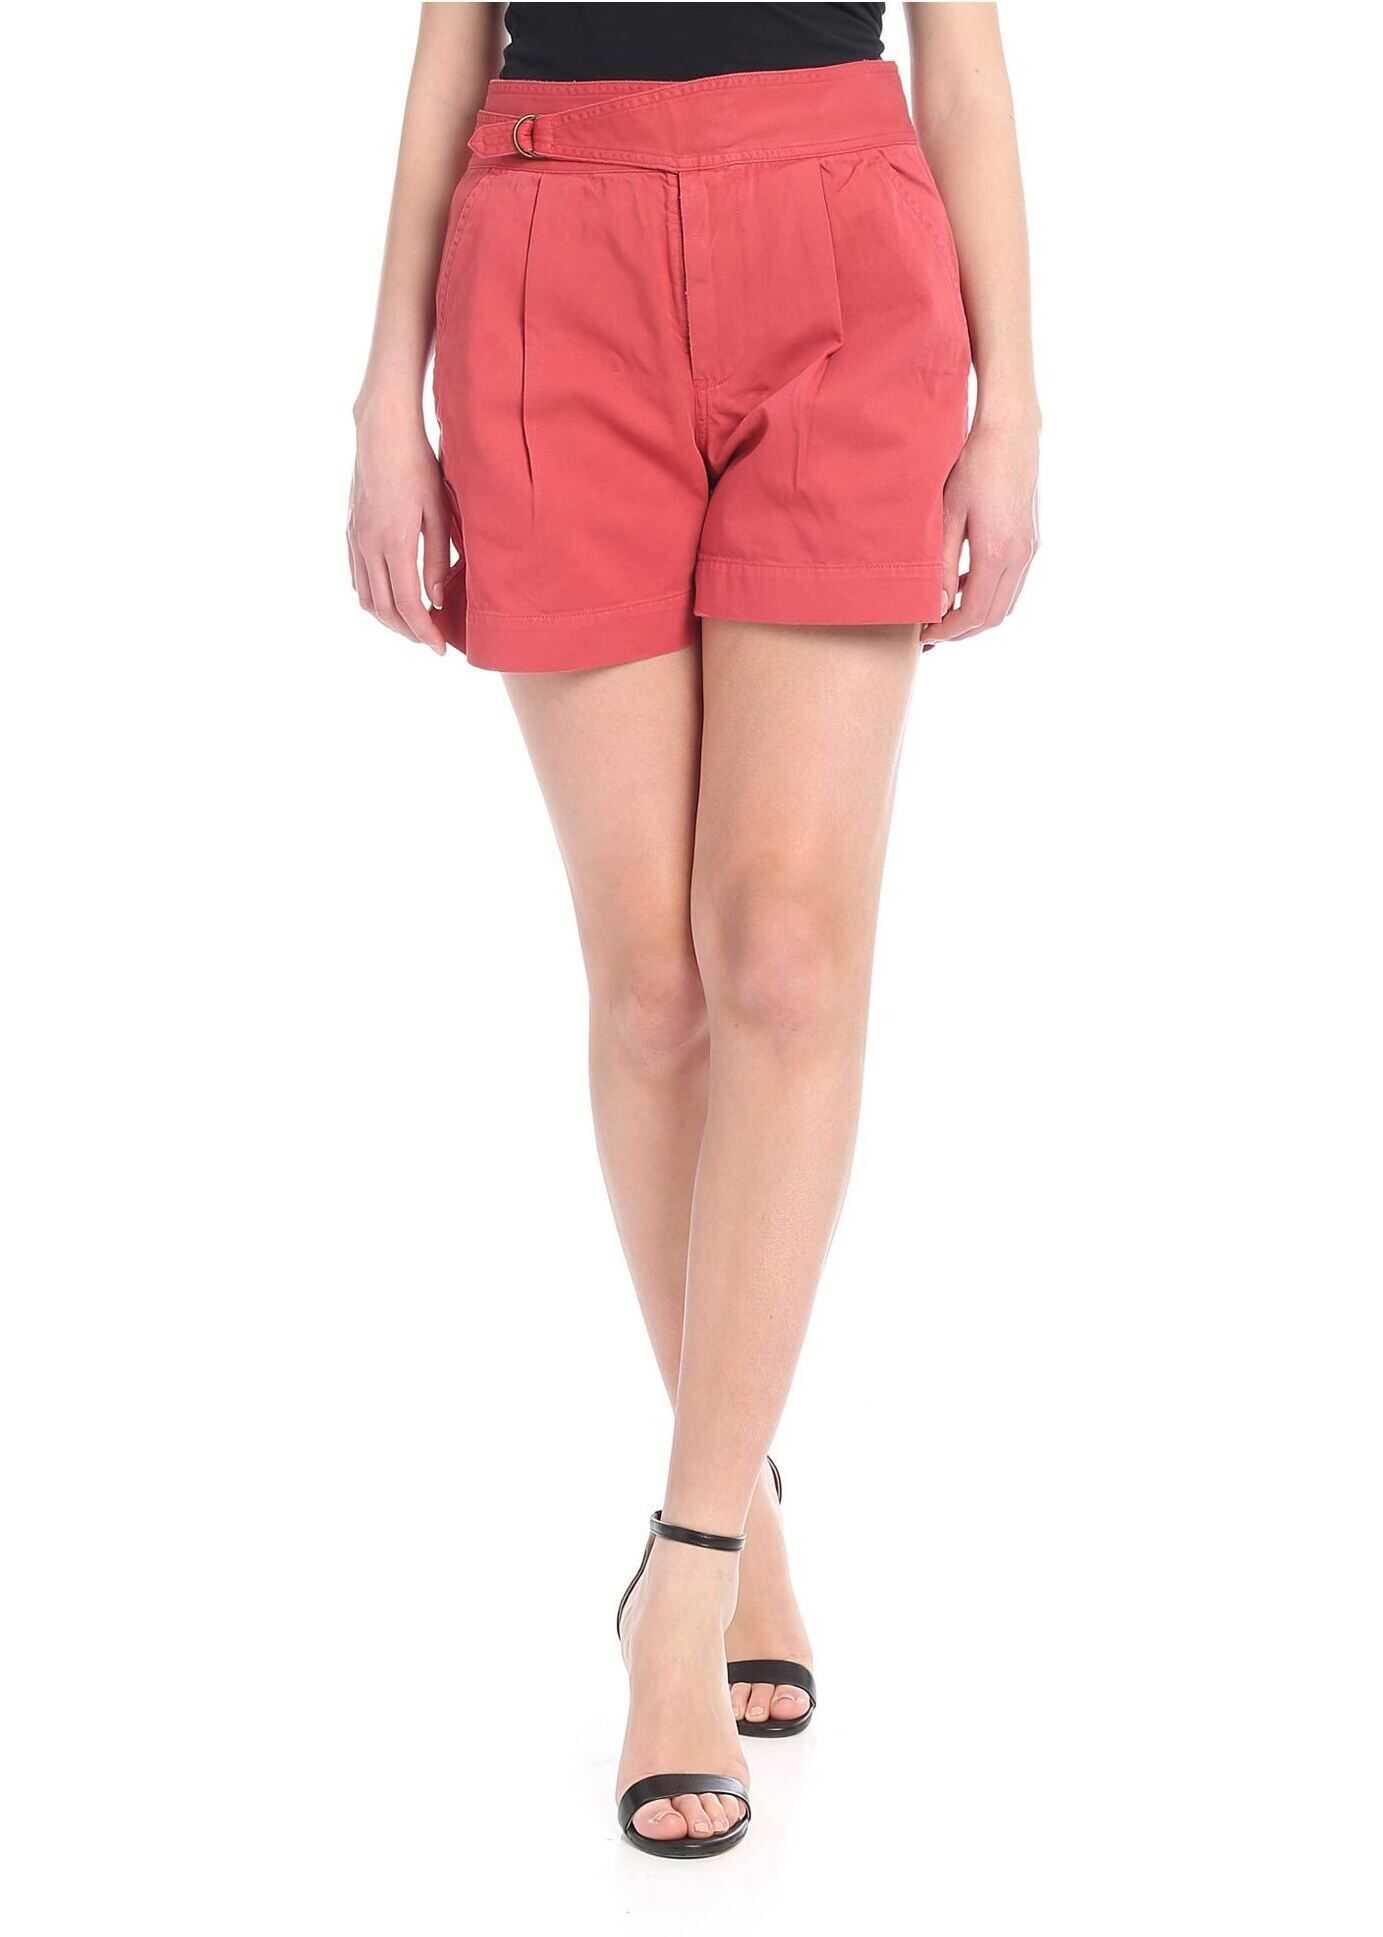 Shorts In Pure Red Cotton